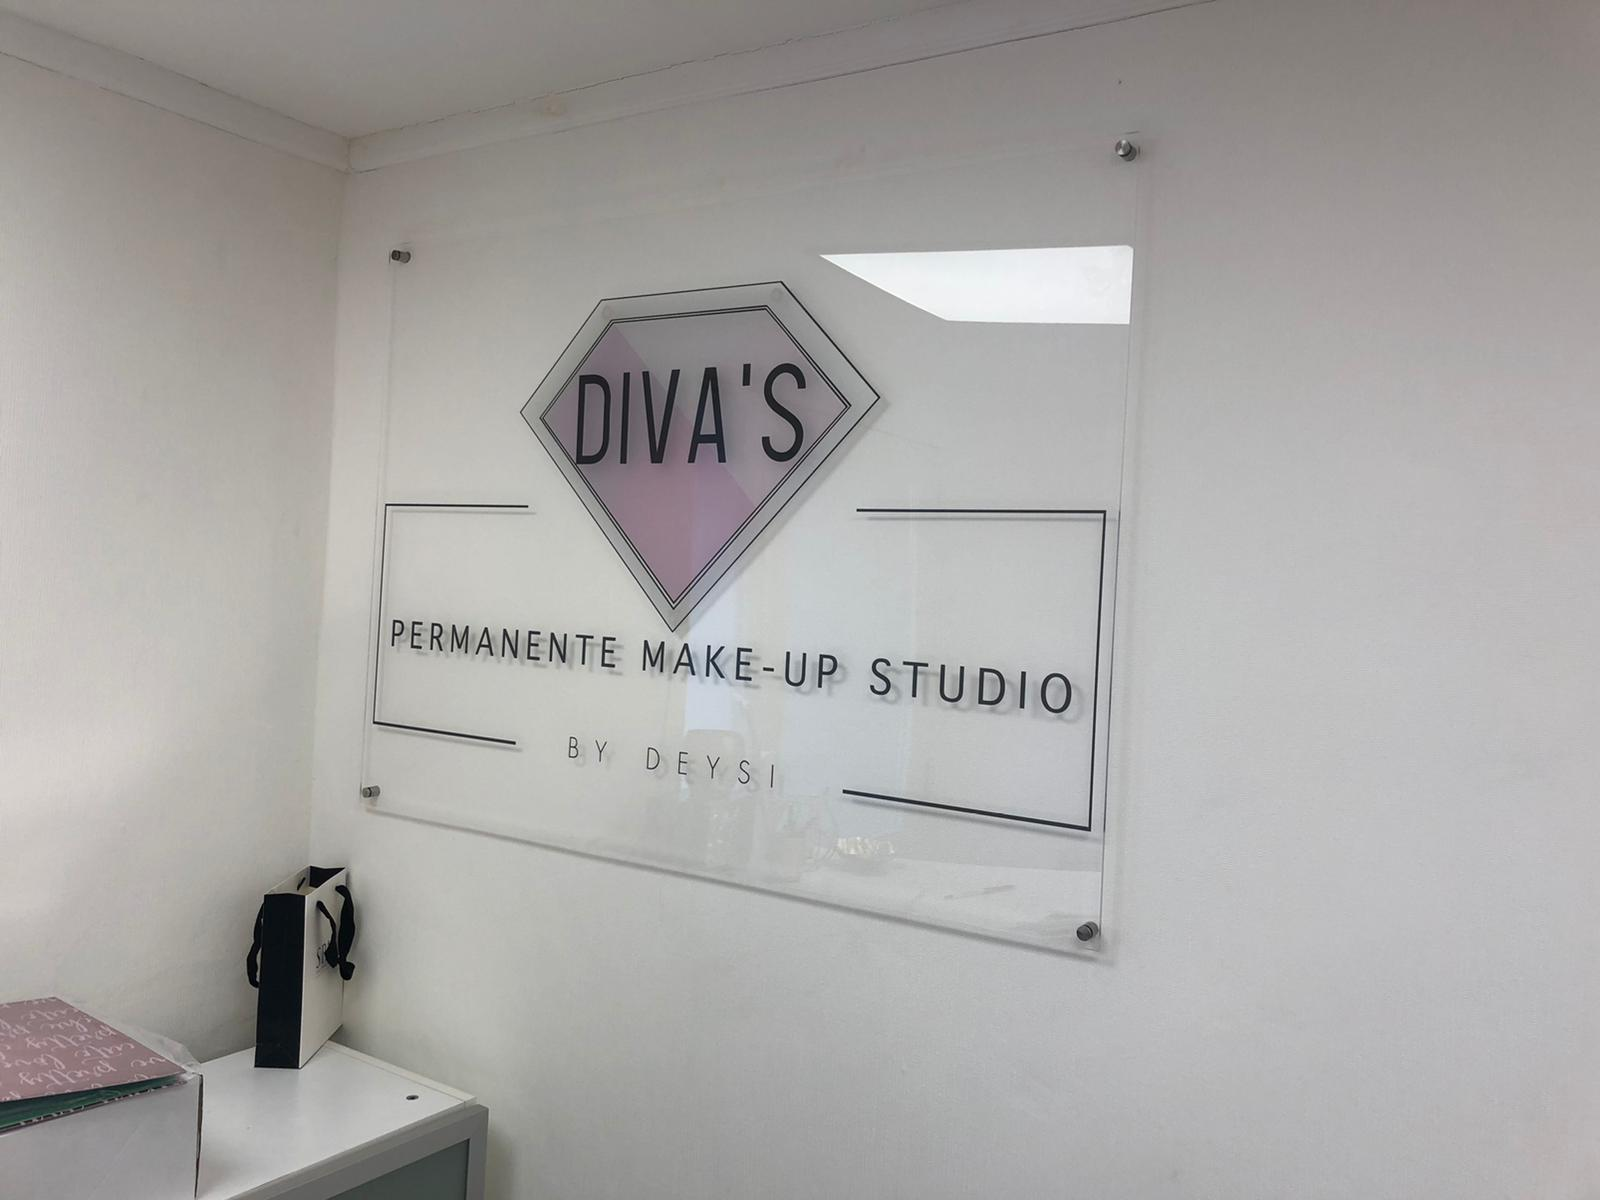 Diva's permanente make-up studio